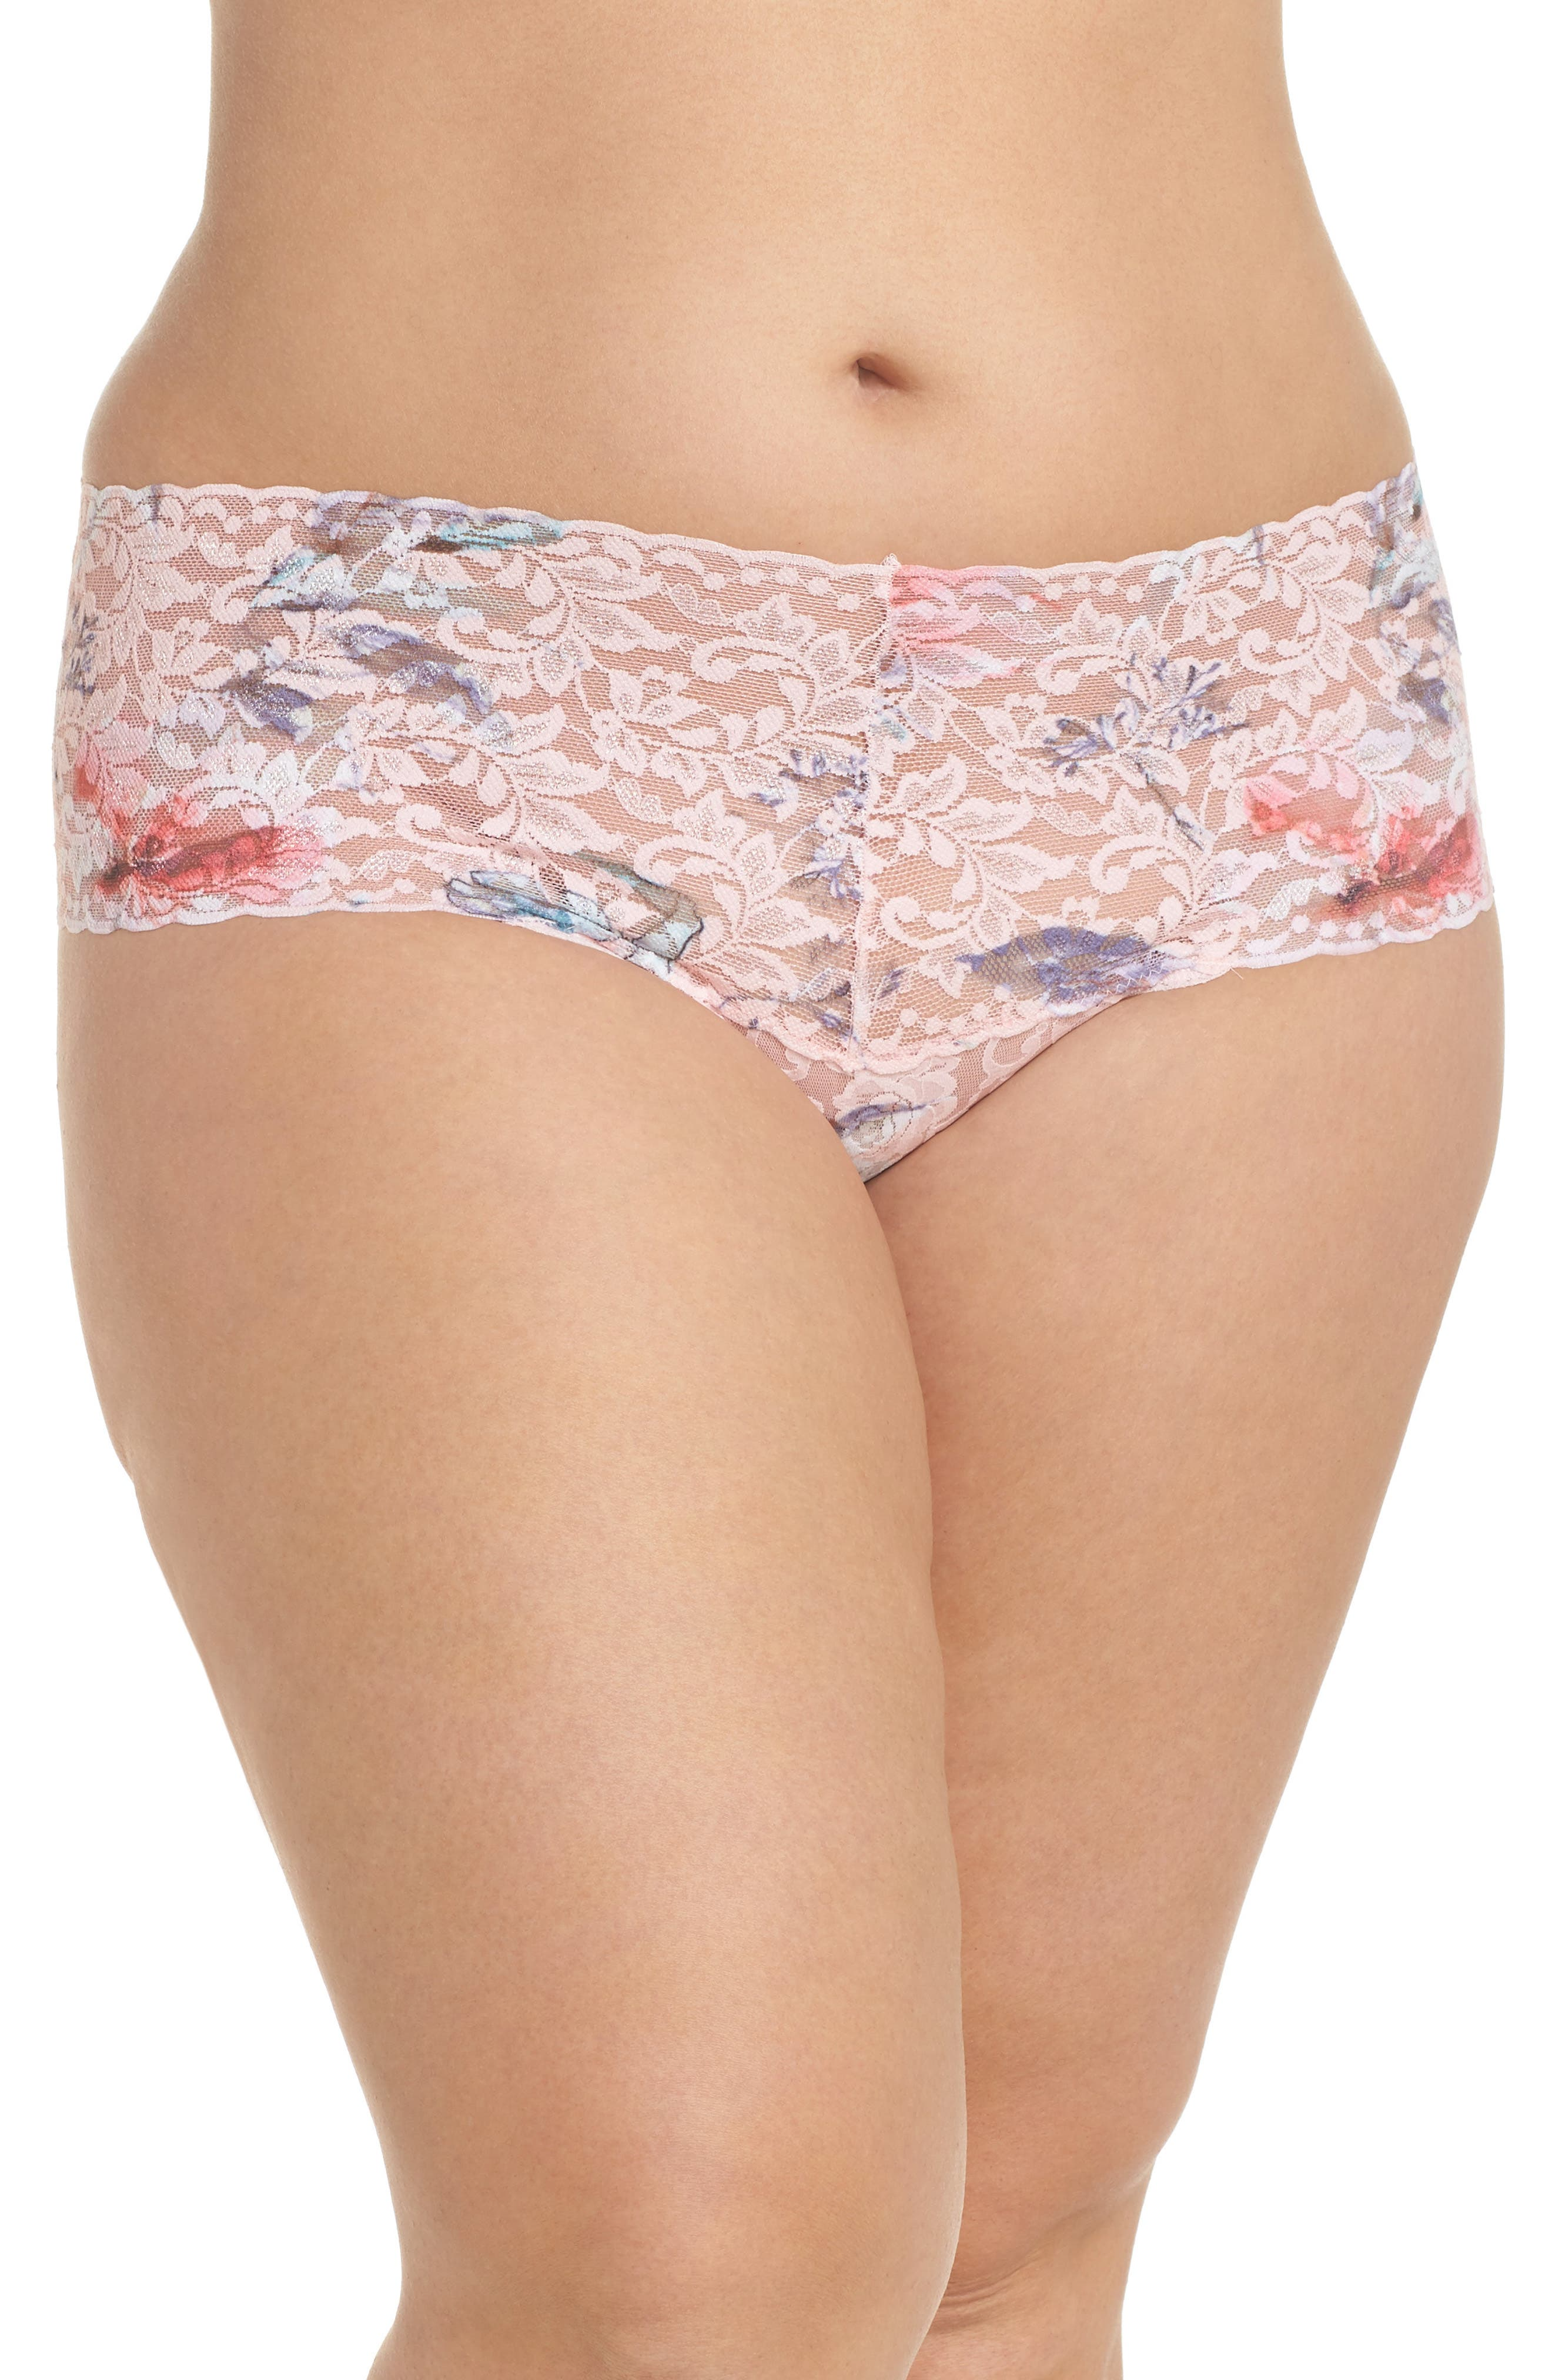 Cherie Retro Thong,                         Main,                         color, Pink Multi